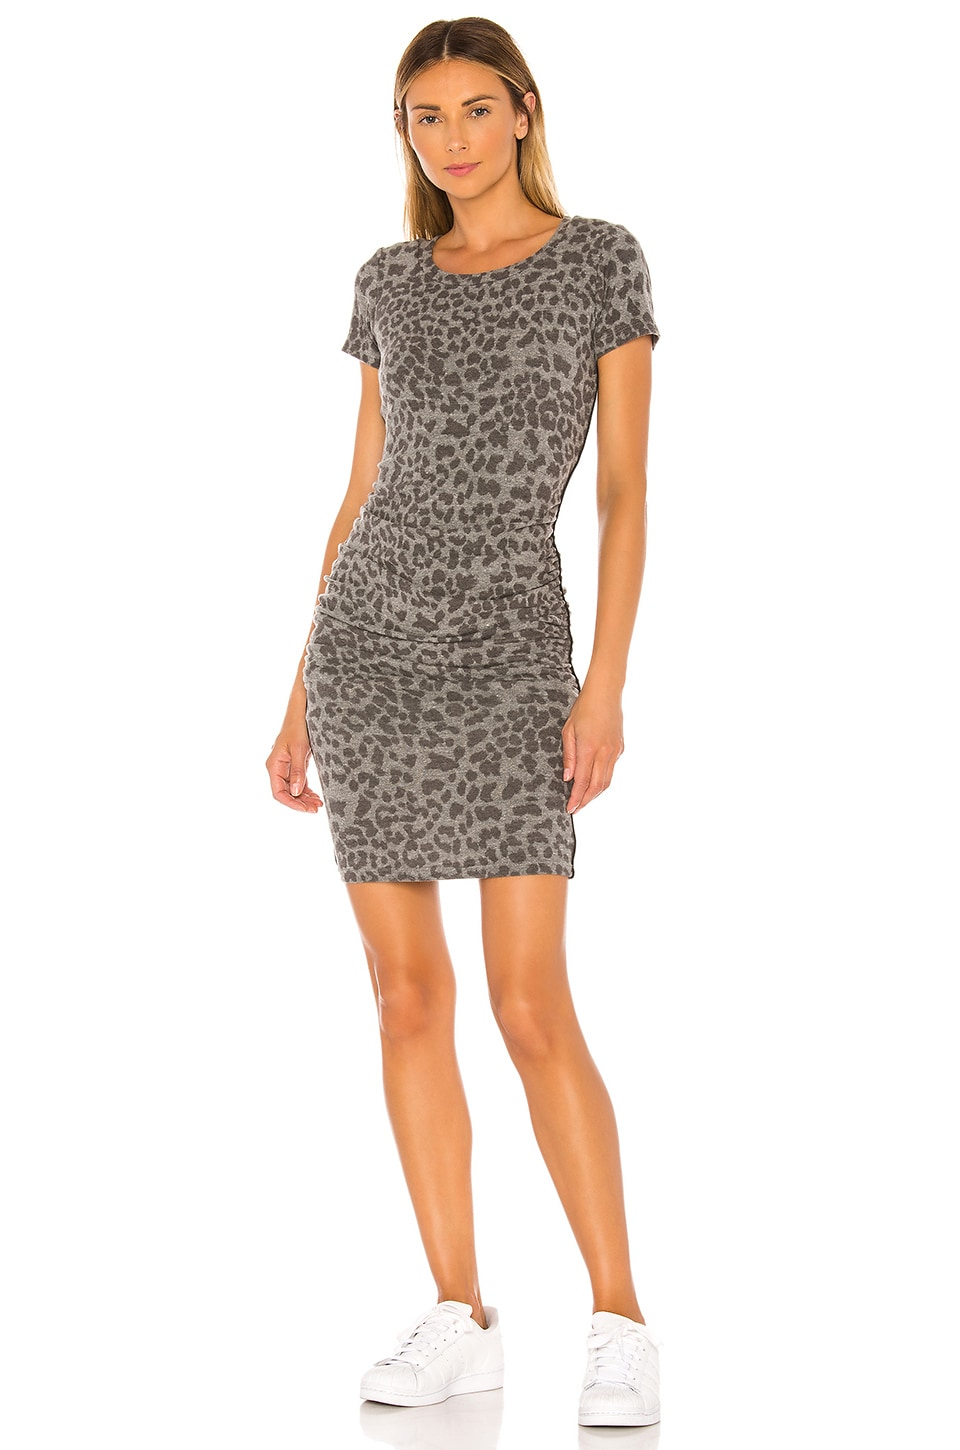 SUNDRY Leopard Print Ruched Dress in Charcoal